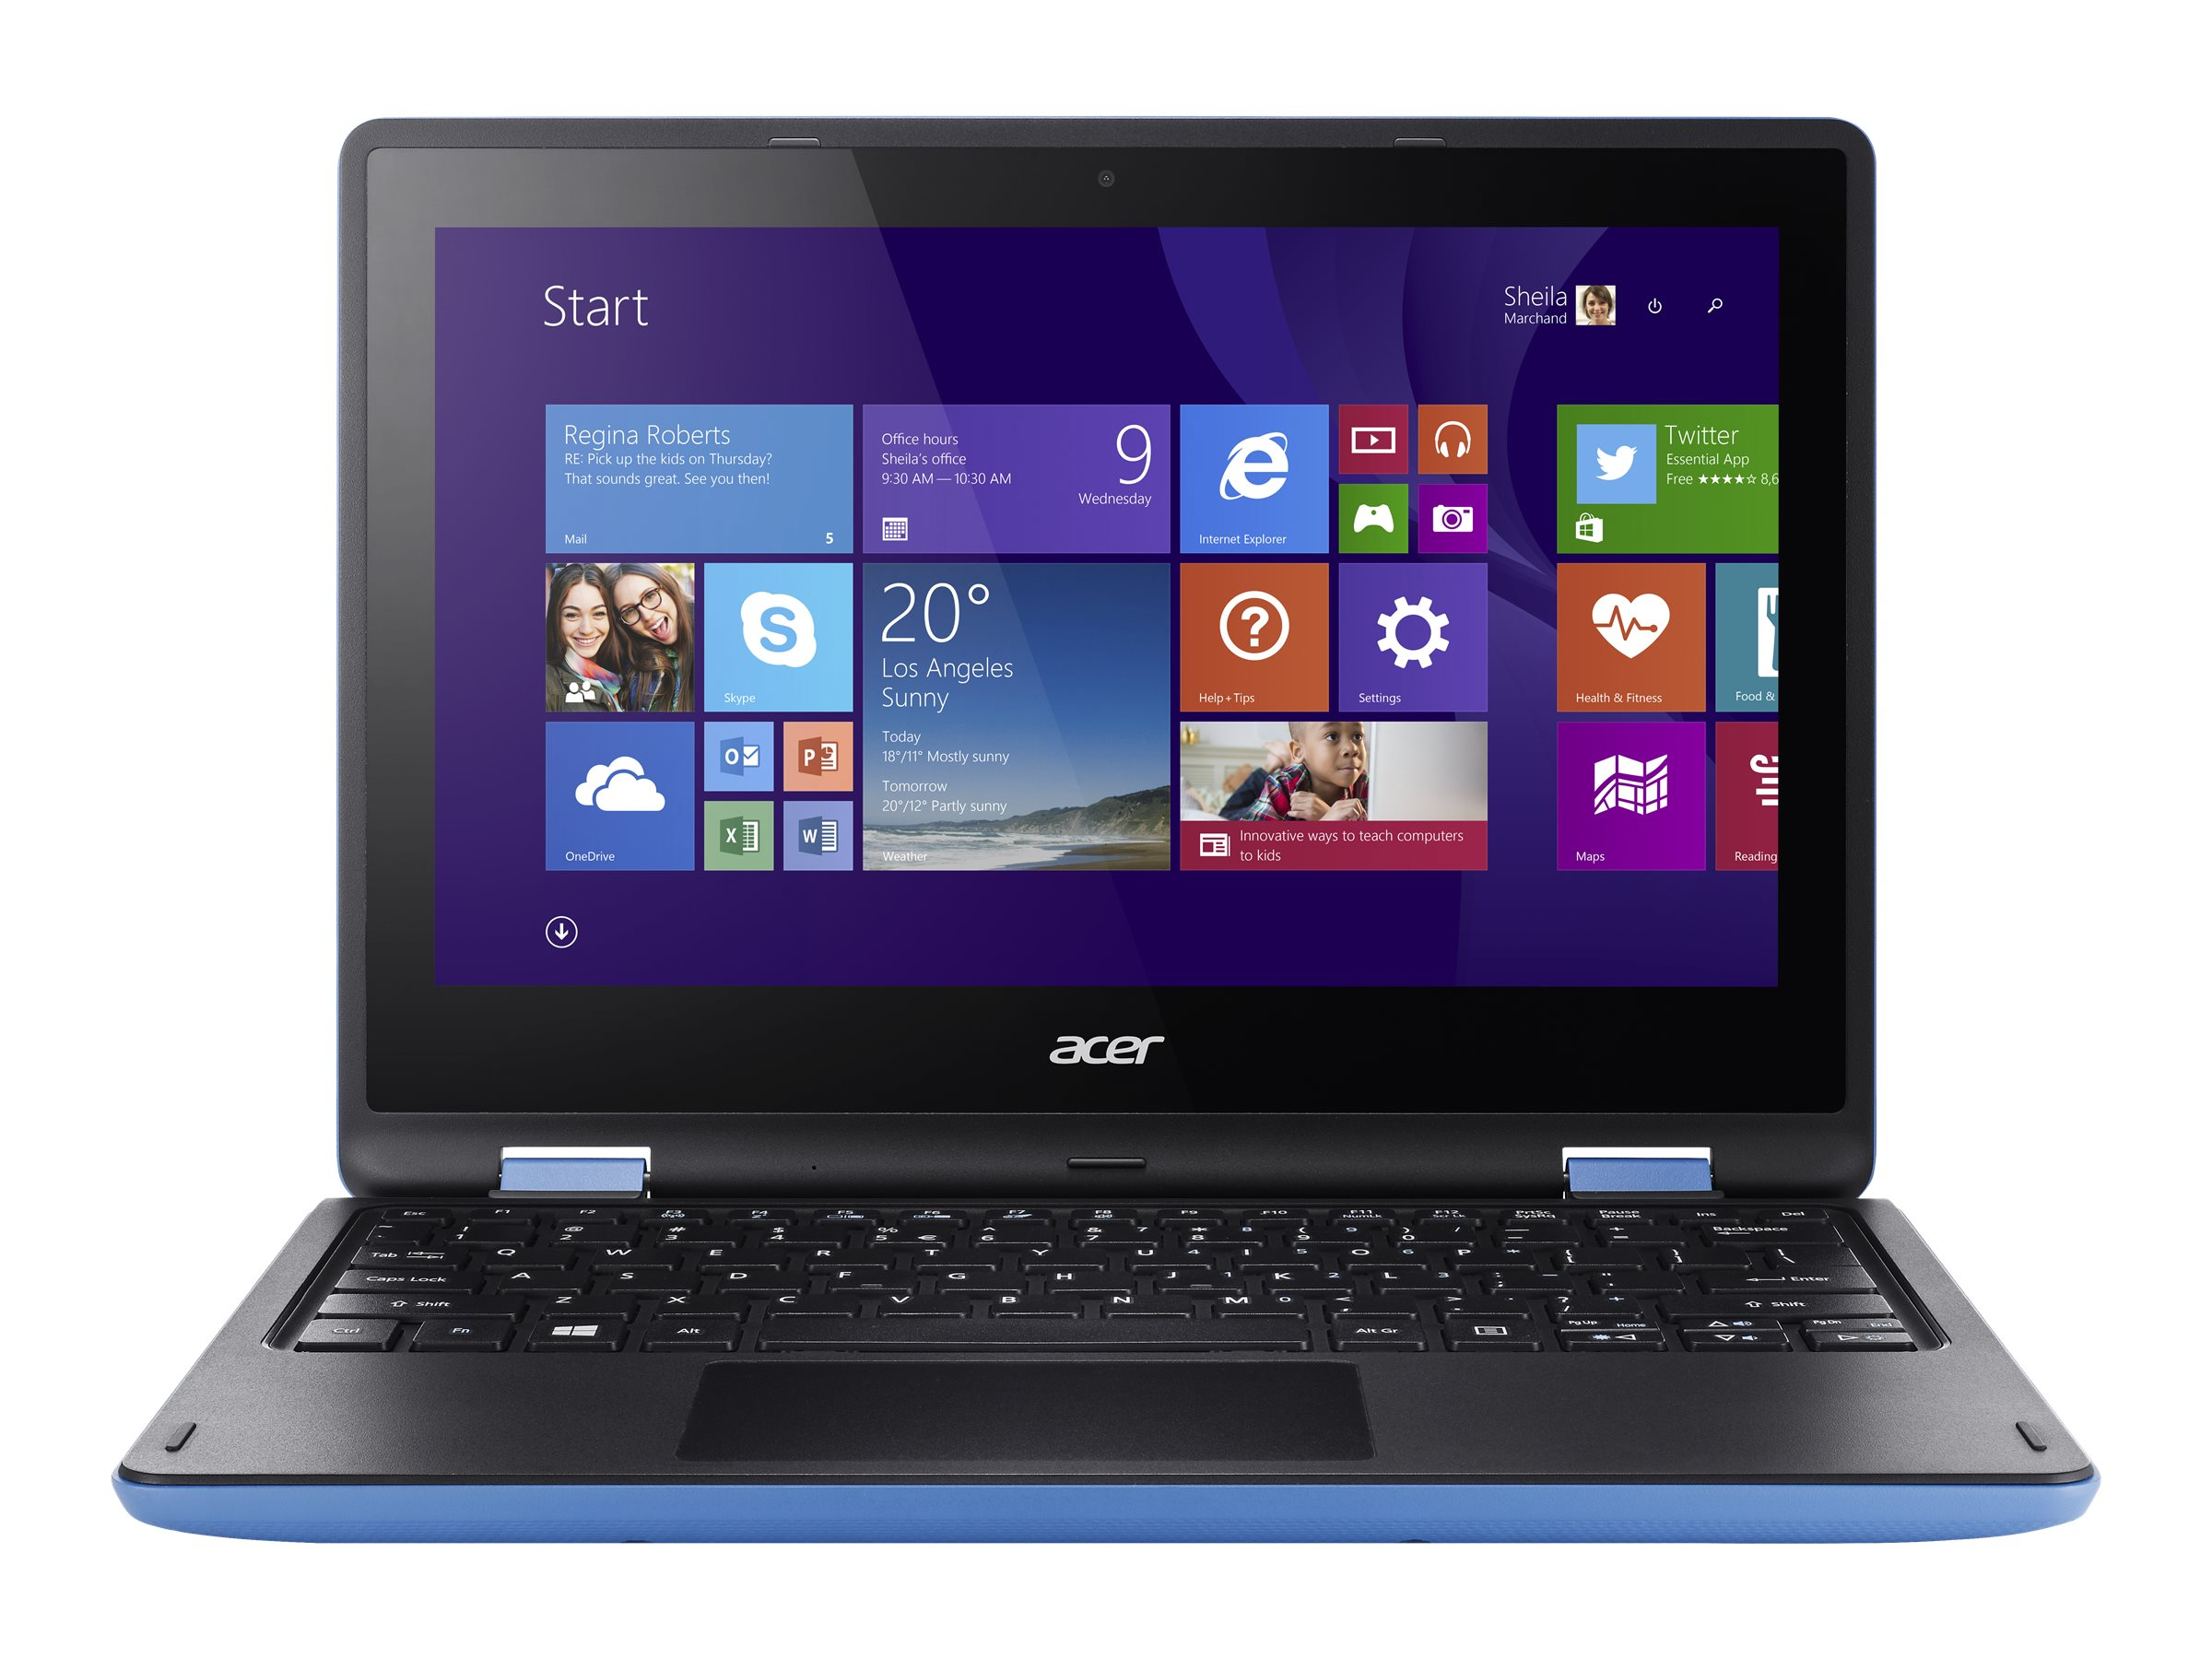 Acer Shape the Future Aspire R3-131T-C1Z5 Celeron N3150 1.6GHz 4GB 500GB ac BT WC 11.6 HD MT W10P64 Blue, NX.G0YAA.016